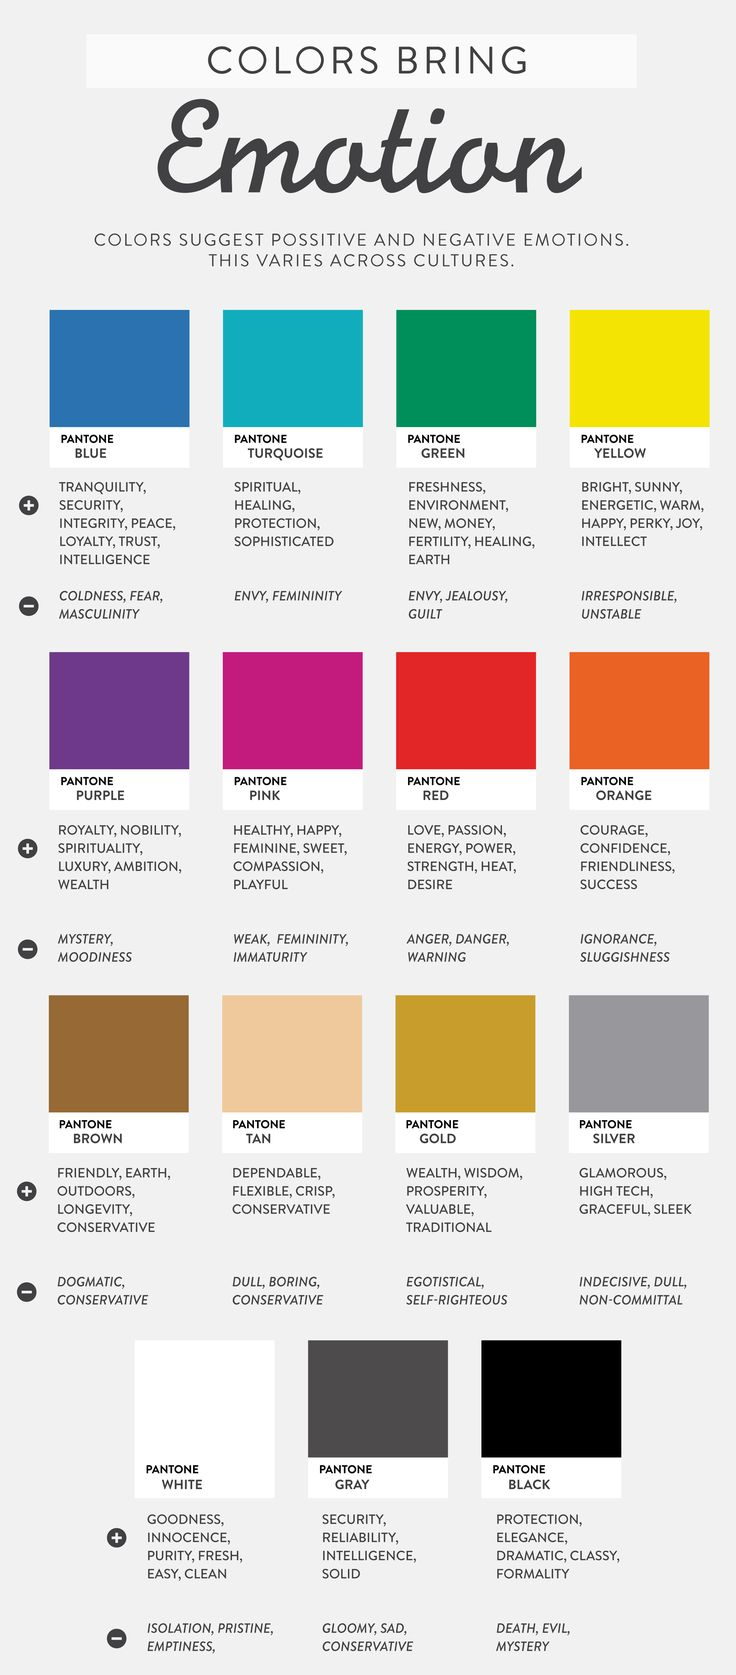 When you're looking to paint a room or style it, do you think about how the colour will make that room feel?